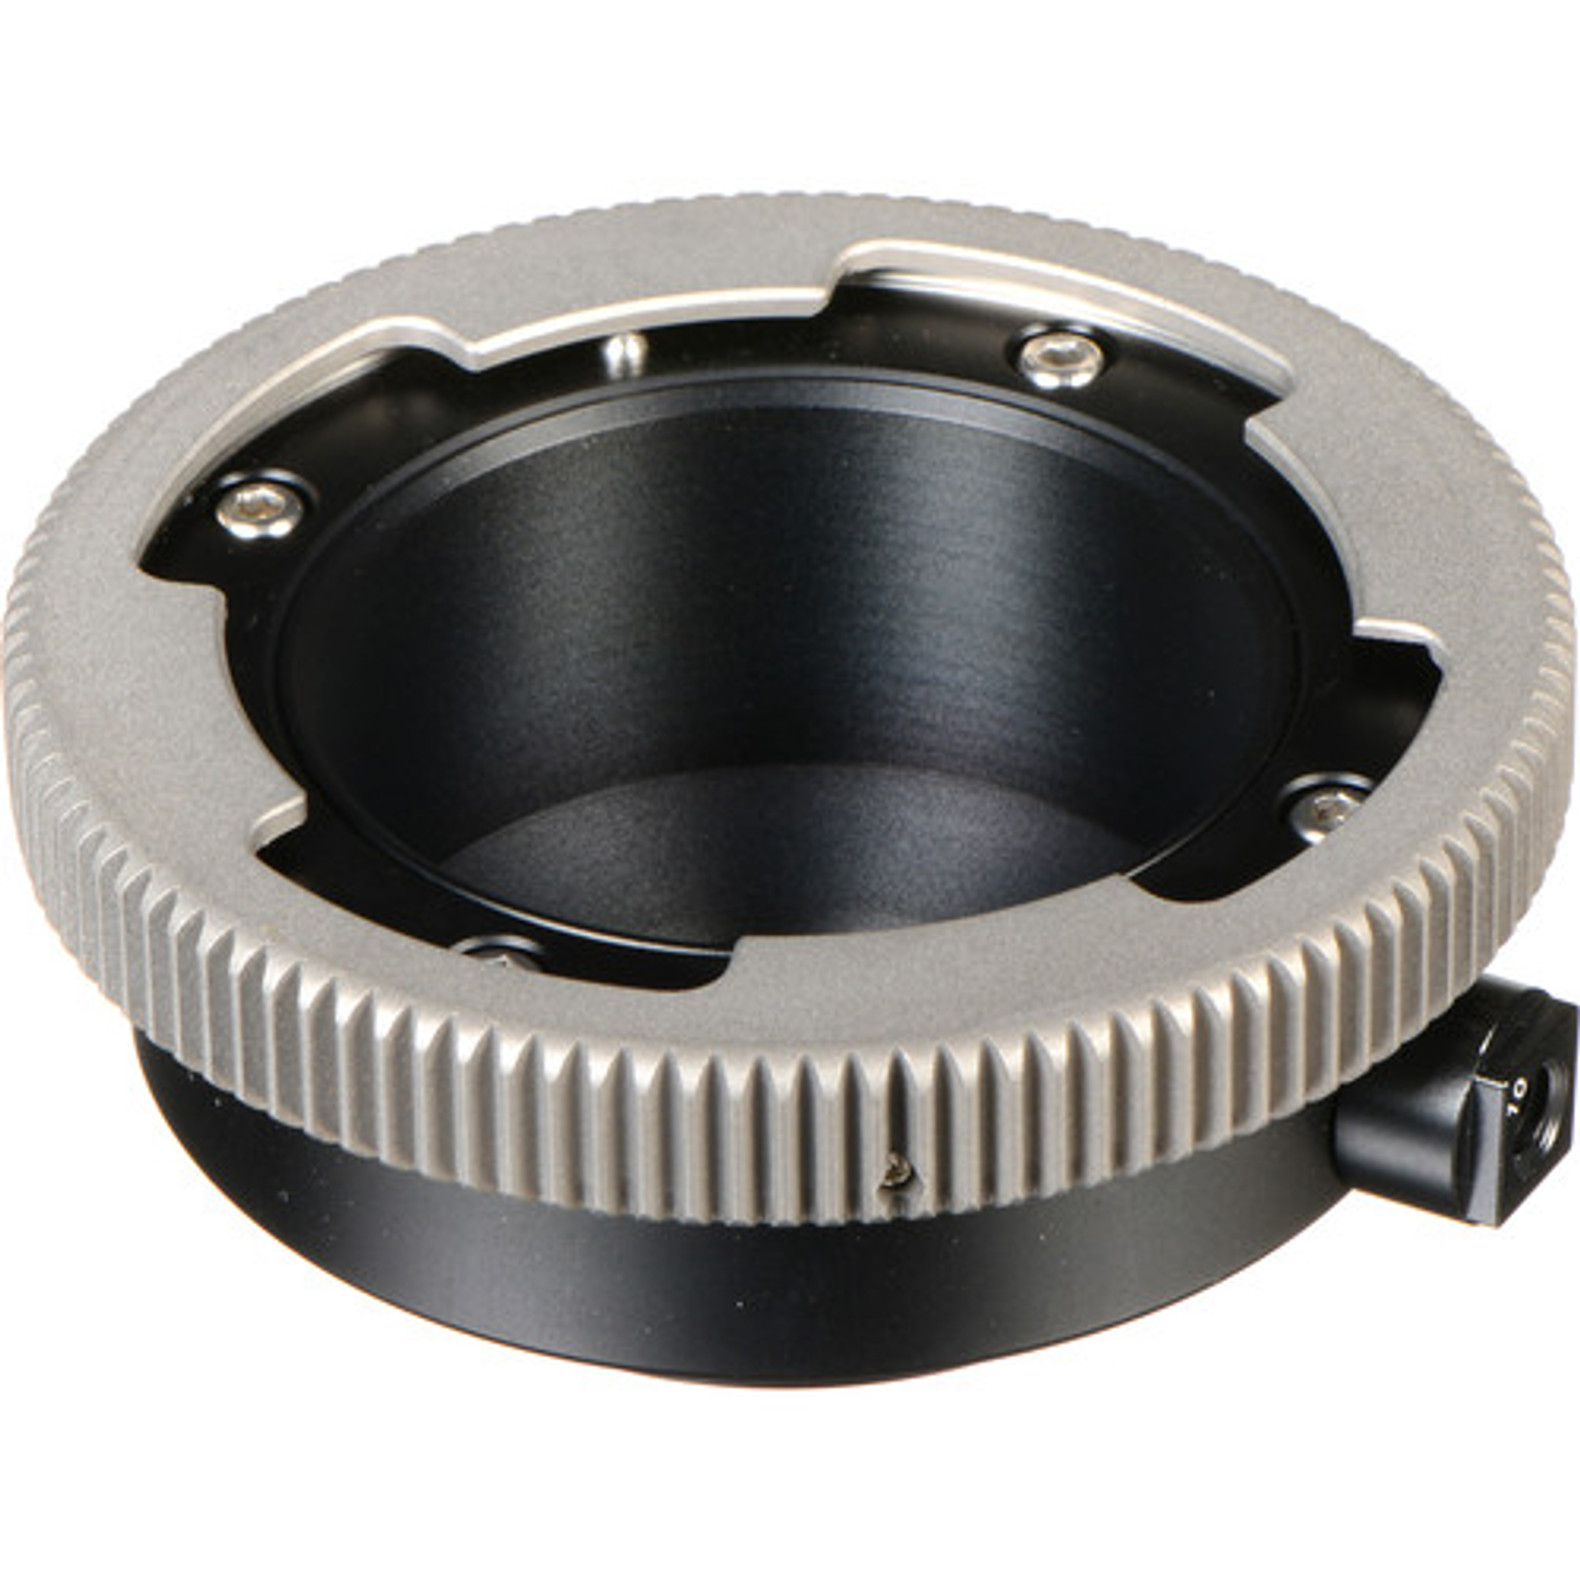 SLR Magic PL to MFT-Mount Adapter